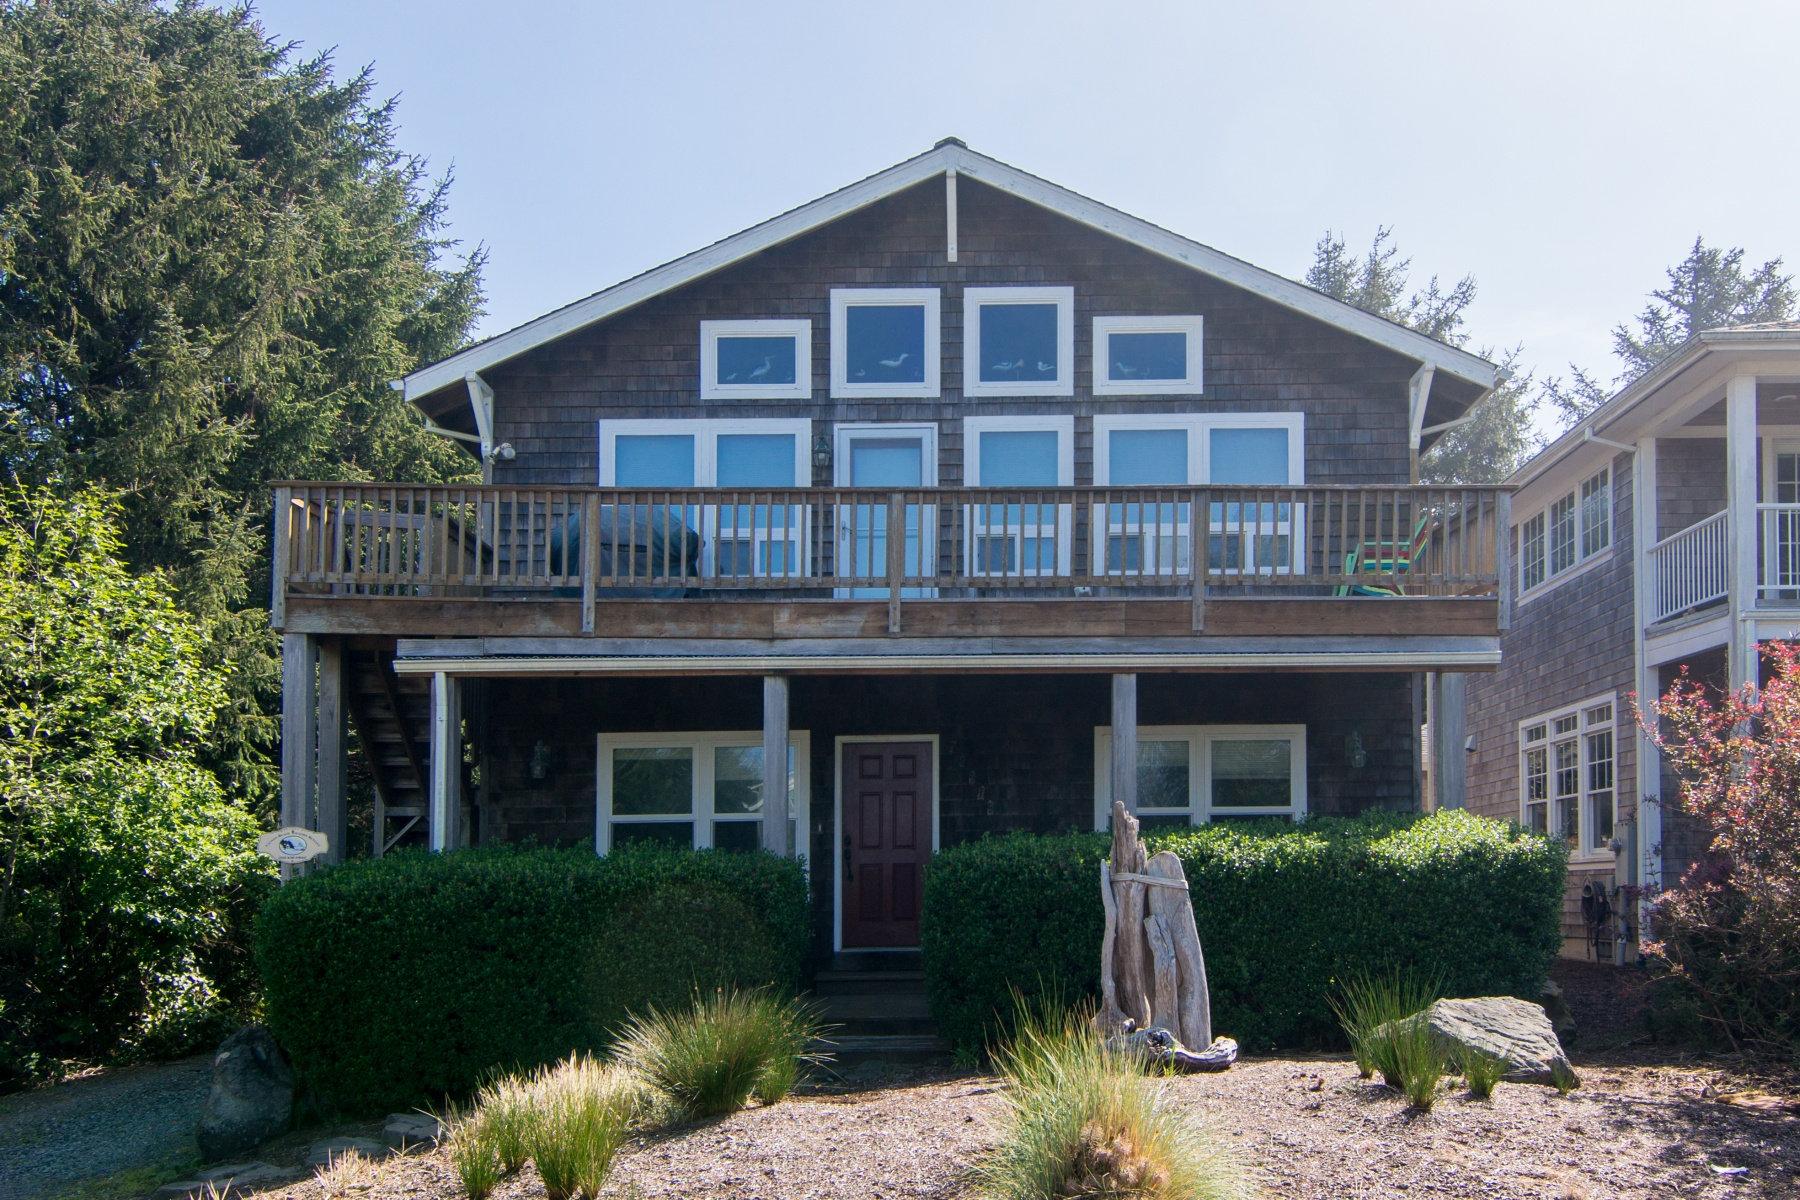 Single Family Home for Sale at 79929 W Beach RD, ARCH CAPE Arch Cape, Oregon, 97102 United States